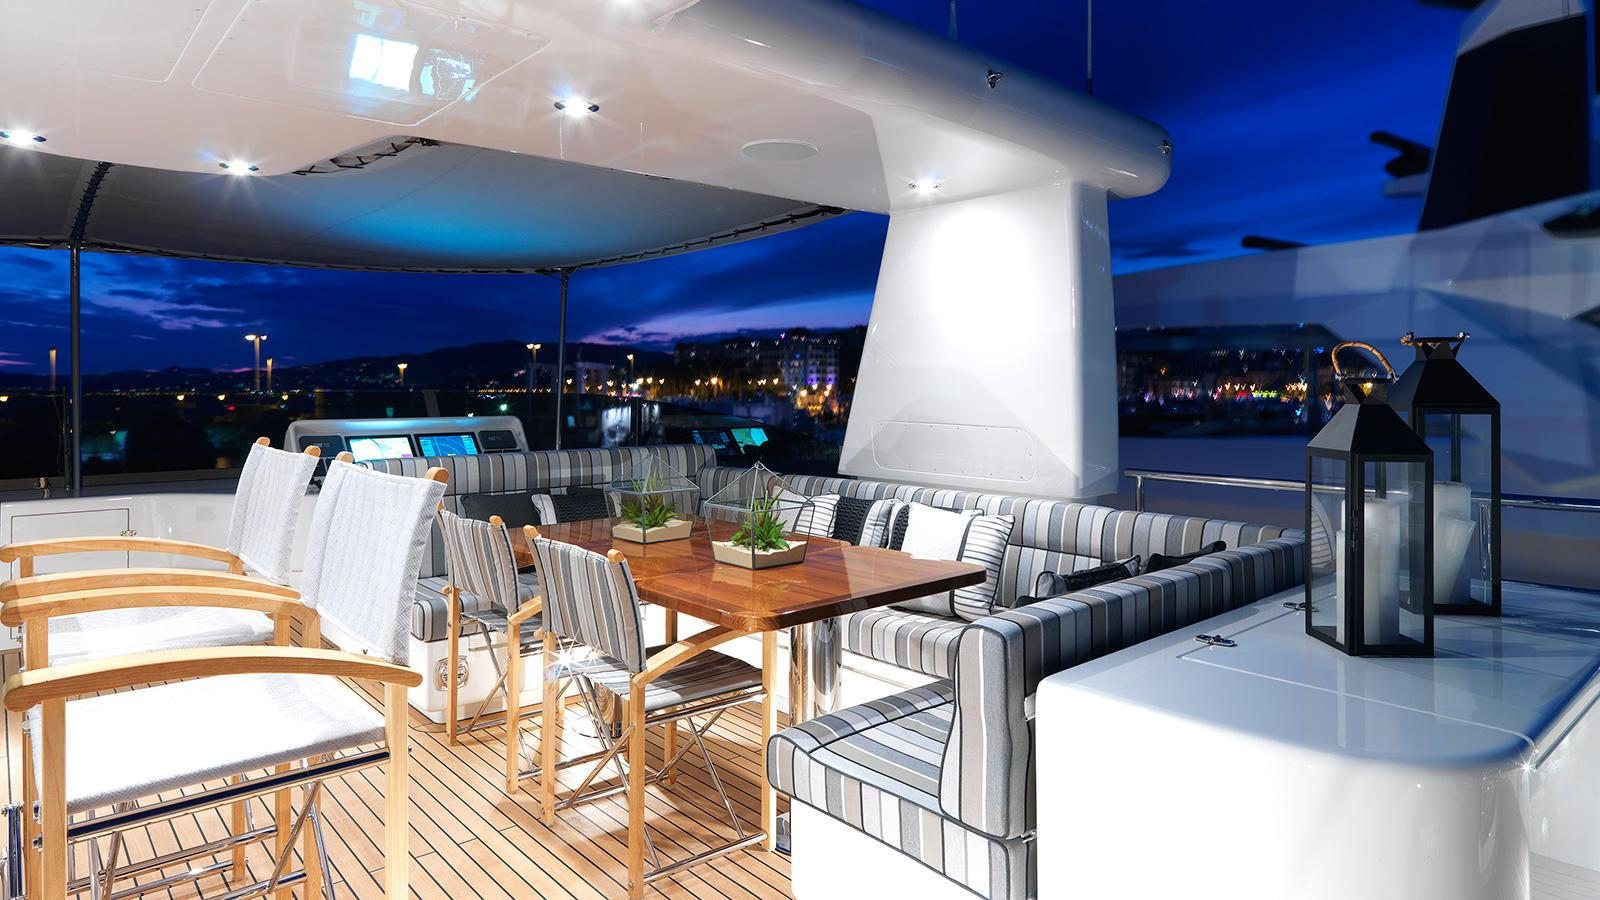 storm-motor-yacht-cantiere-dell-marche-darwin-107-2015-33m-deck